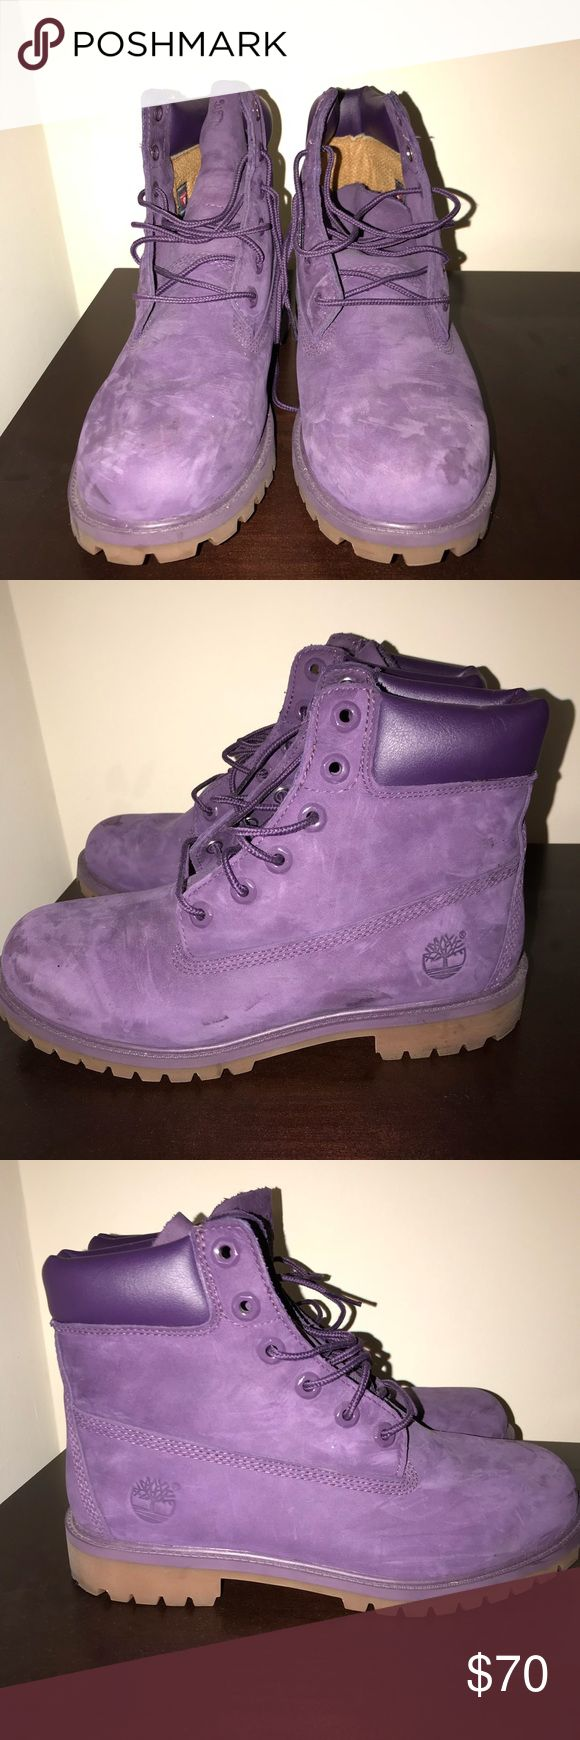 Timberland Boots Purple Timberland Boots Purple  Men's 7  Worn once Timberland Shoes Boots